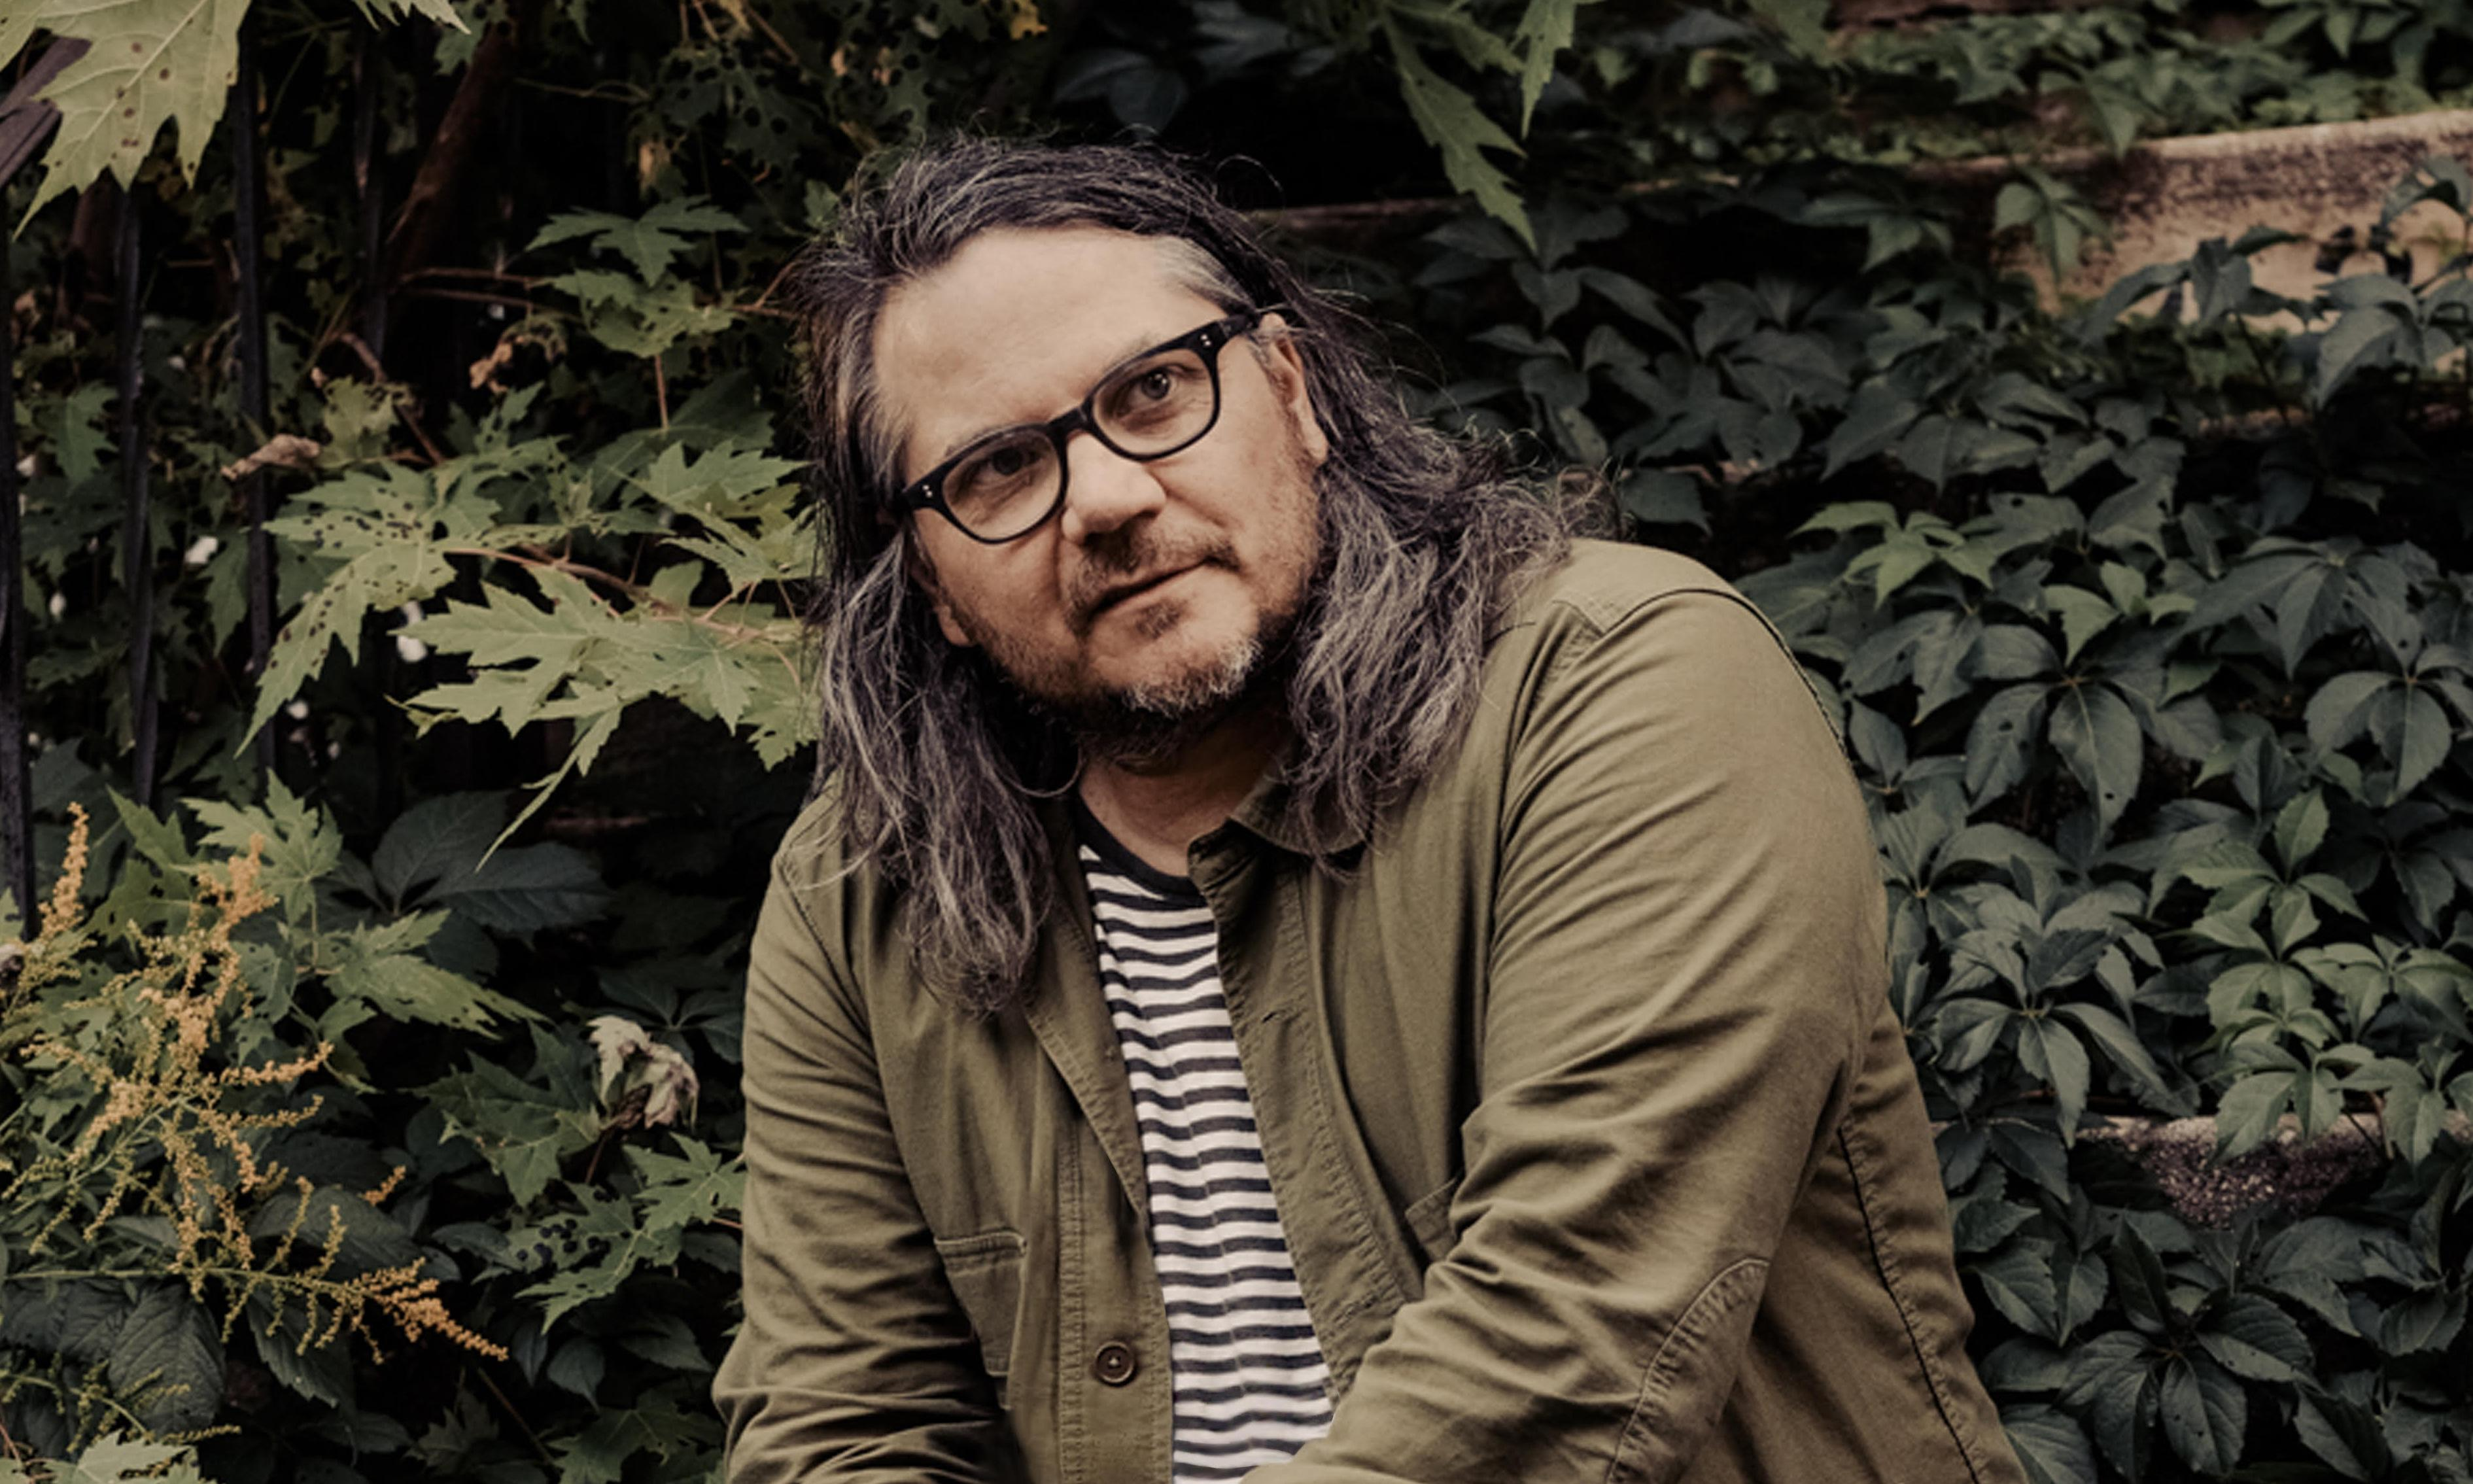 'A bullet lodged in the door': shots fired at Wilco frontman Jeff Tweedy's home